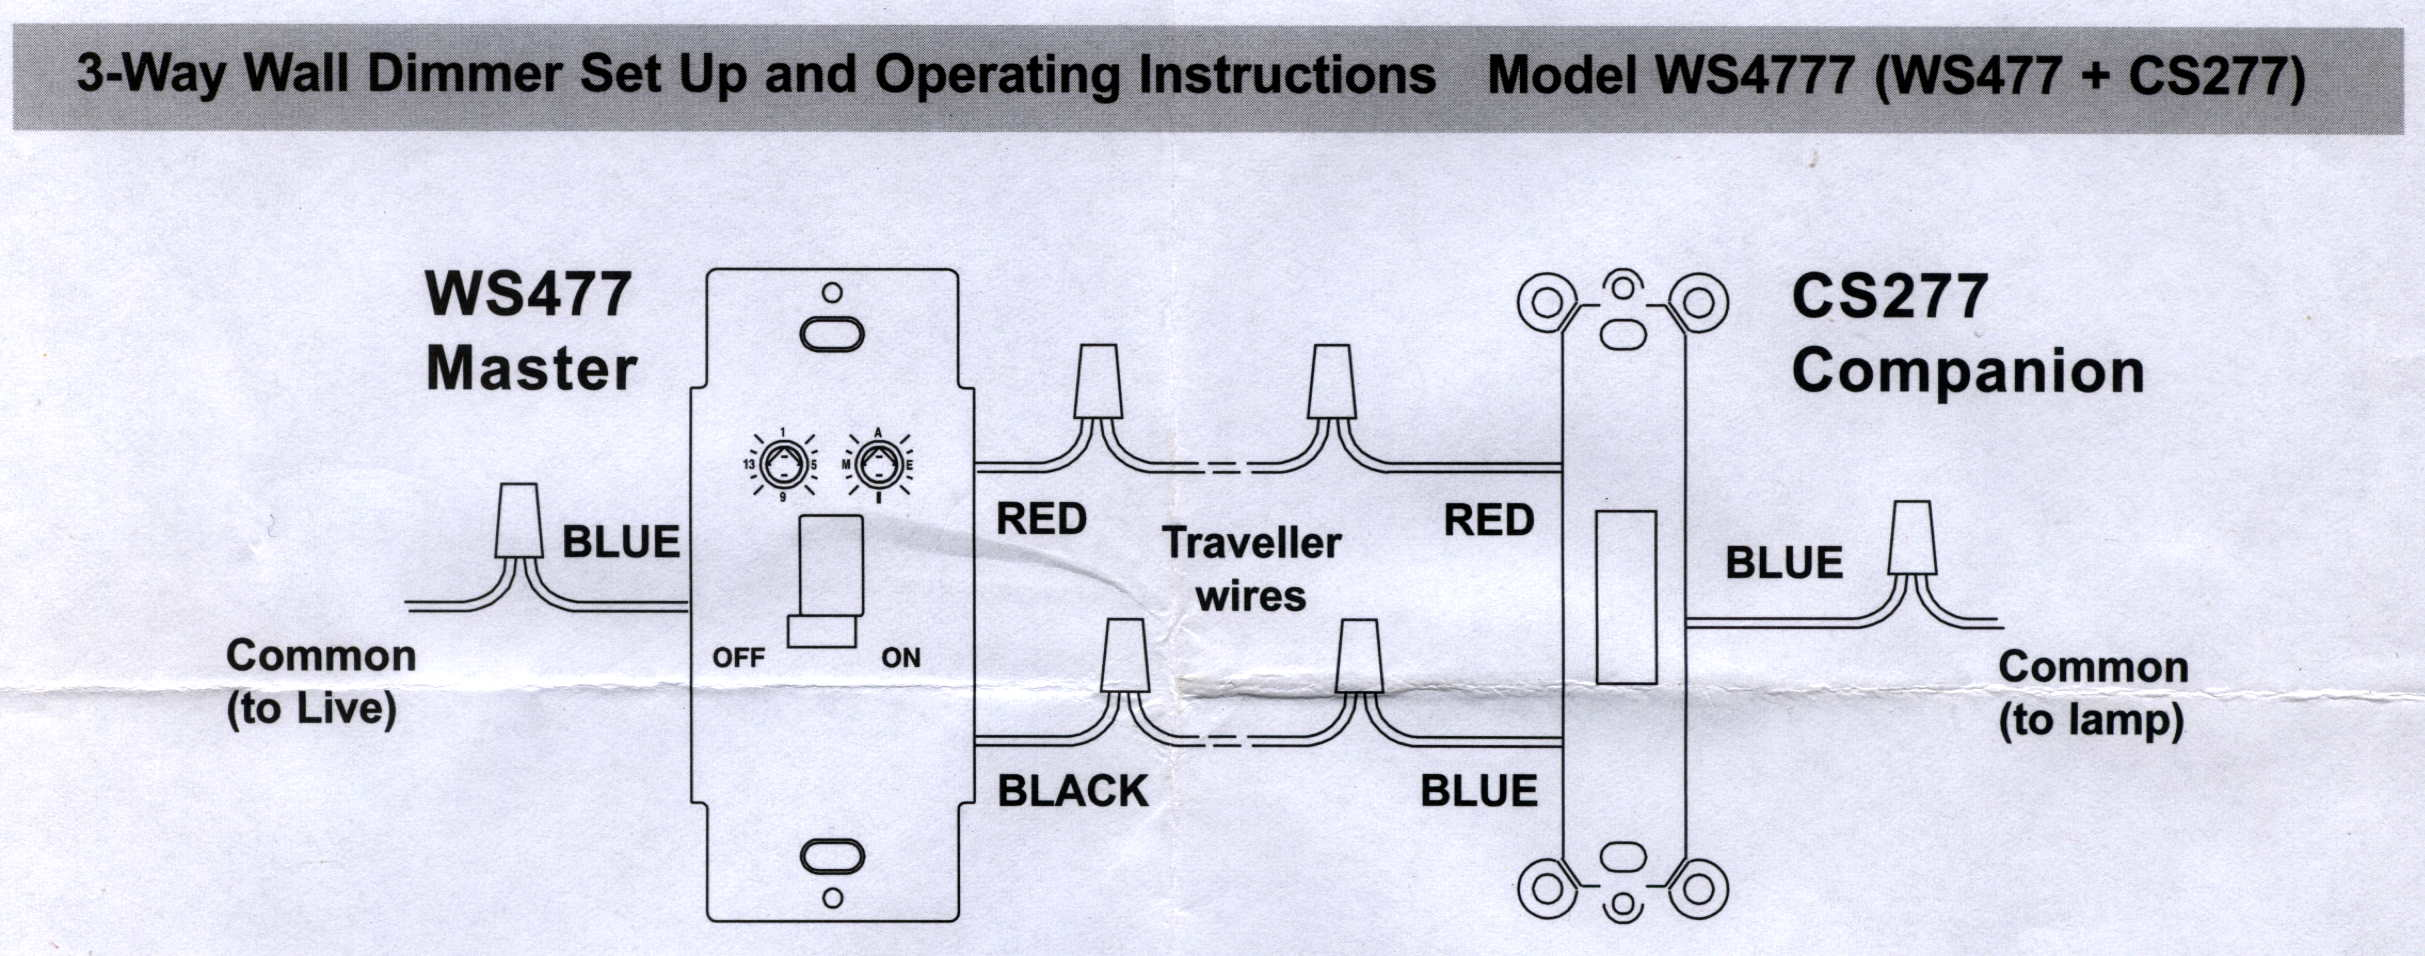 6 Way Light Switch Wiring Diagram Easy Diagrams Re 3 Humbucker Help 10 U2022 Rh Art Isere Com